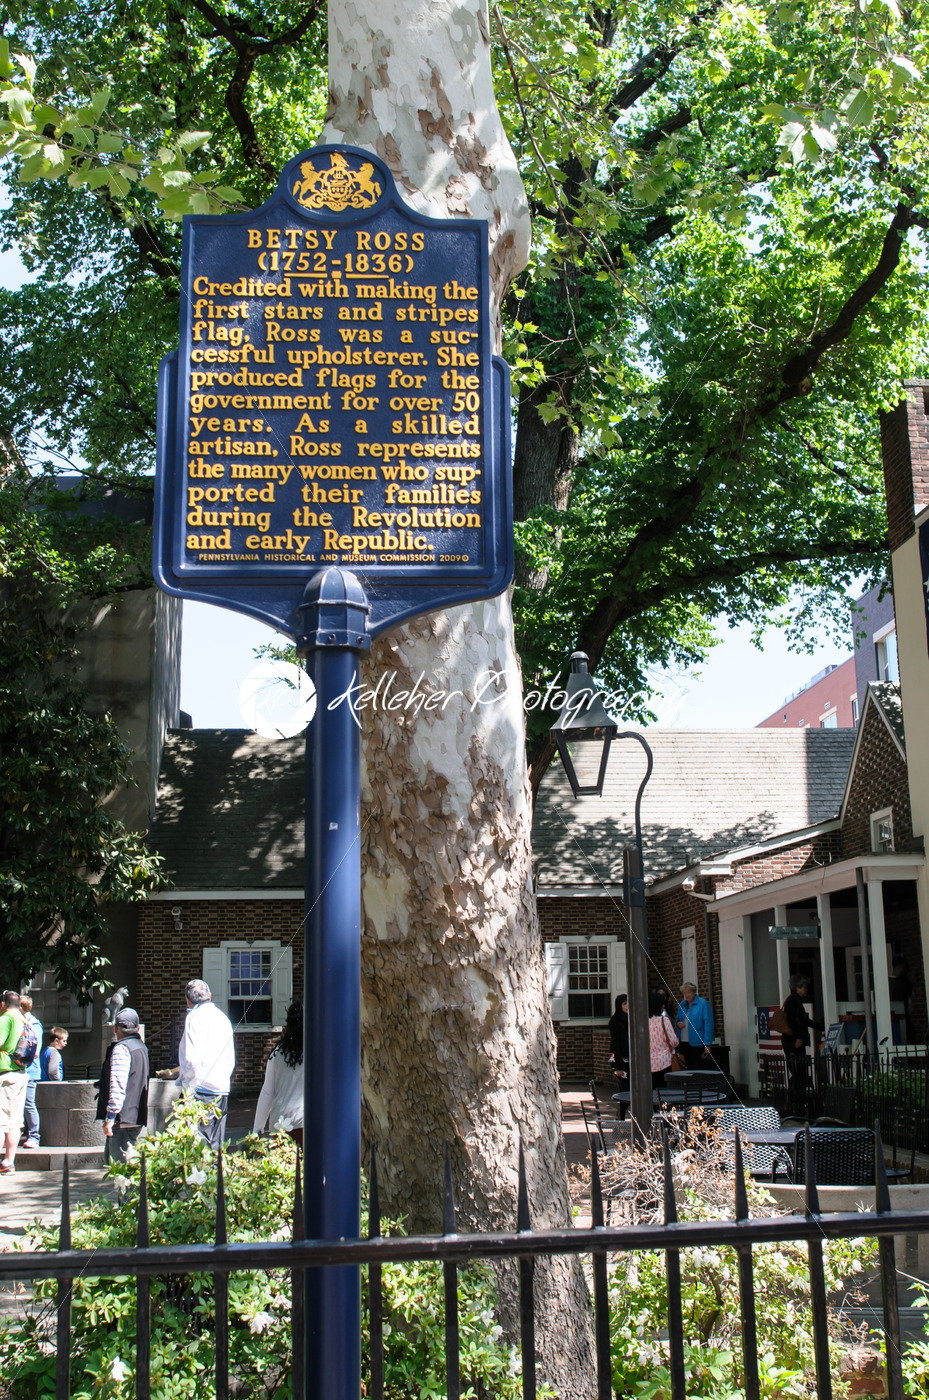 PHILADELPHIA, PA – MAY 14: Historic sign in front of the Betsy Ross House at 239 Arch Street on May 14, 2015 - Kelleher Photography Store